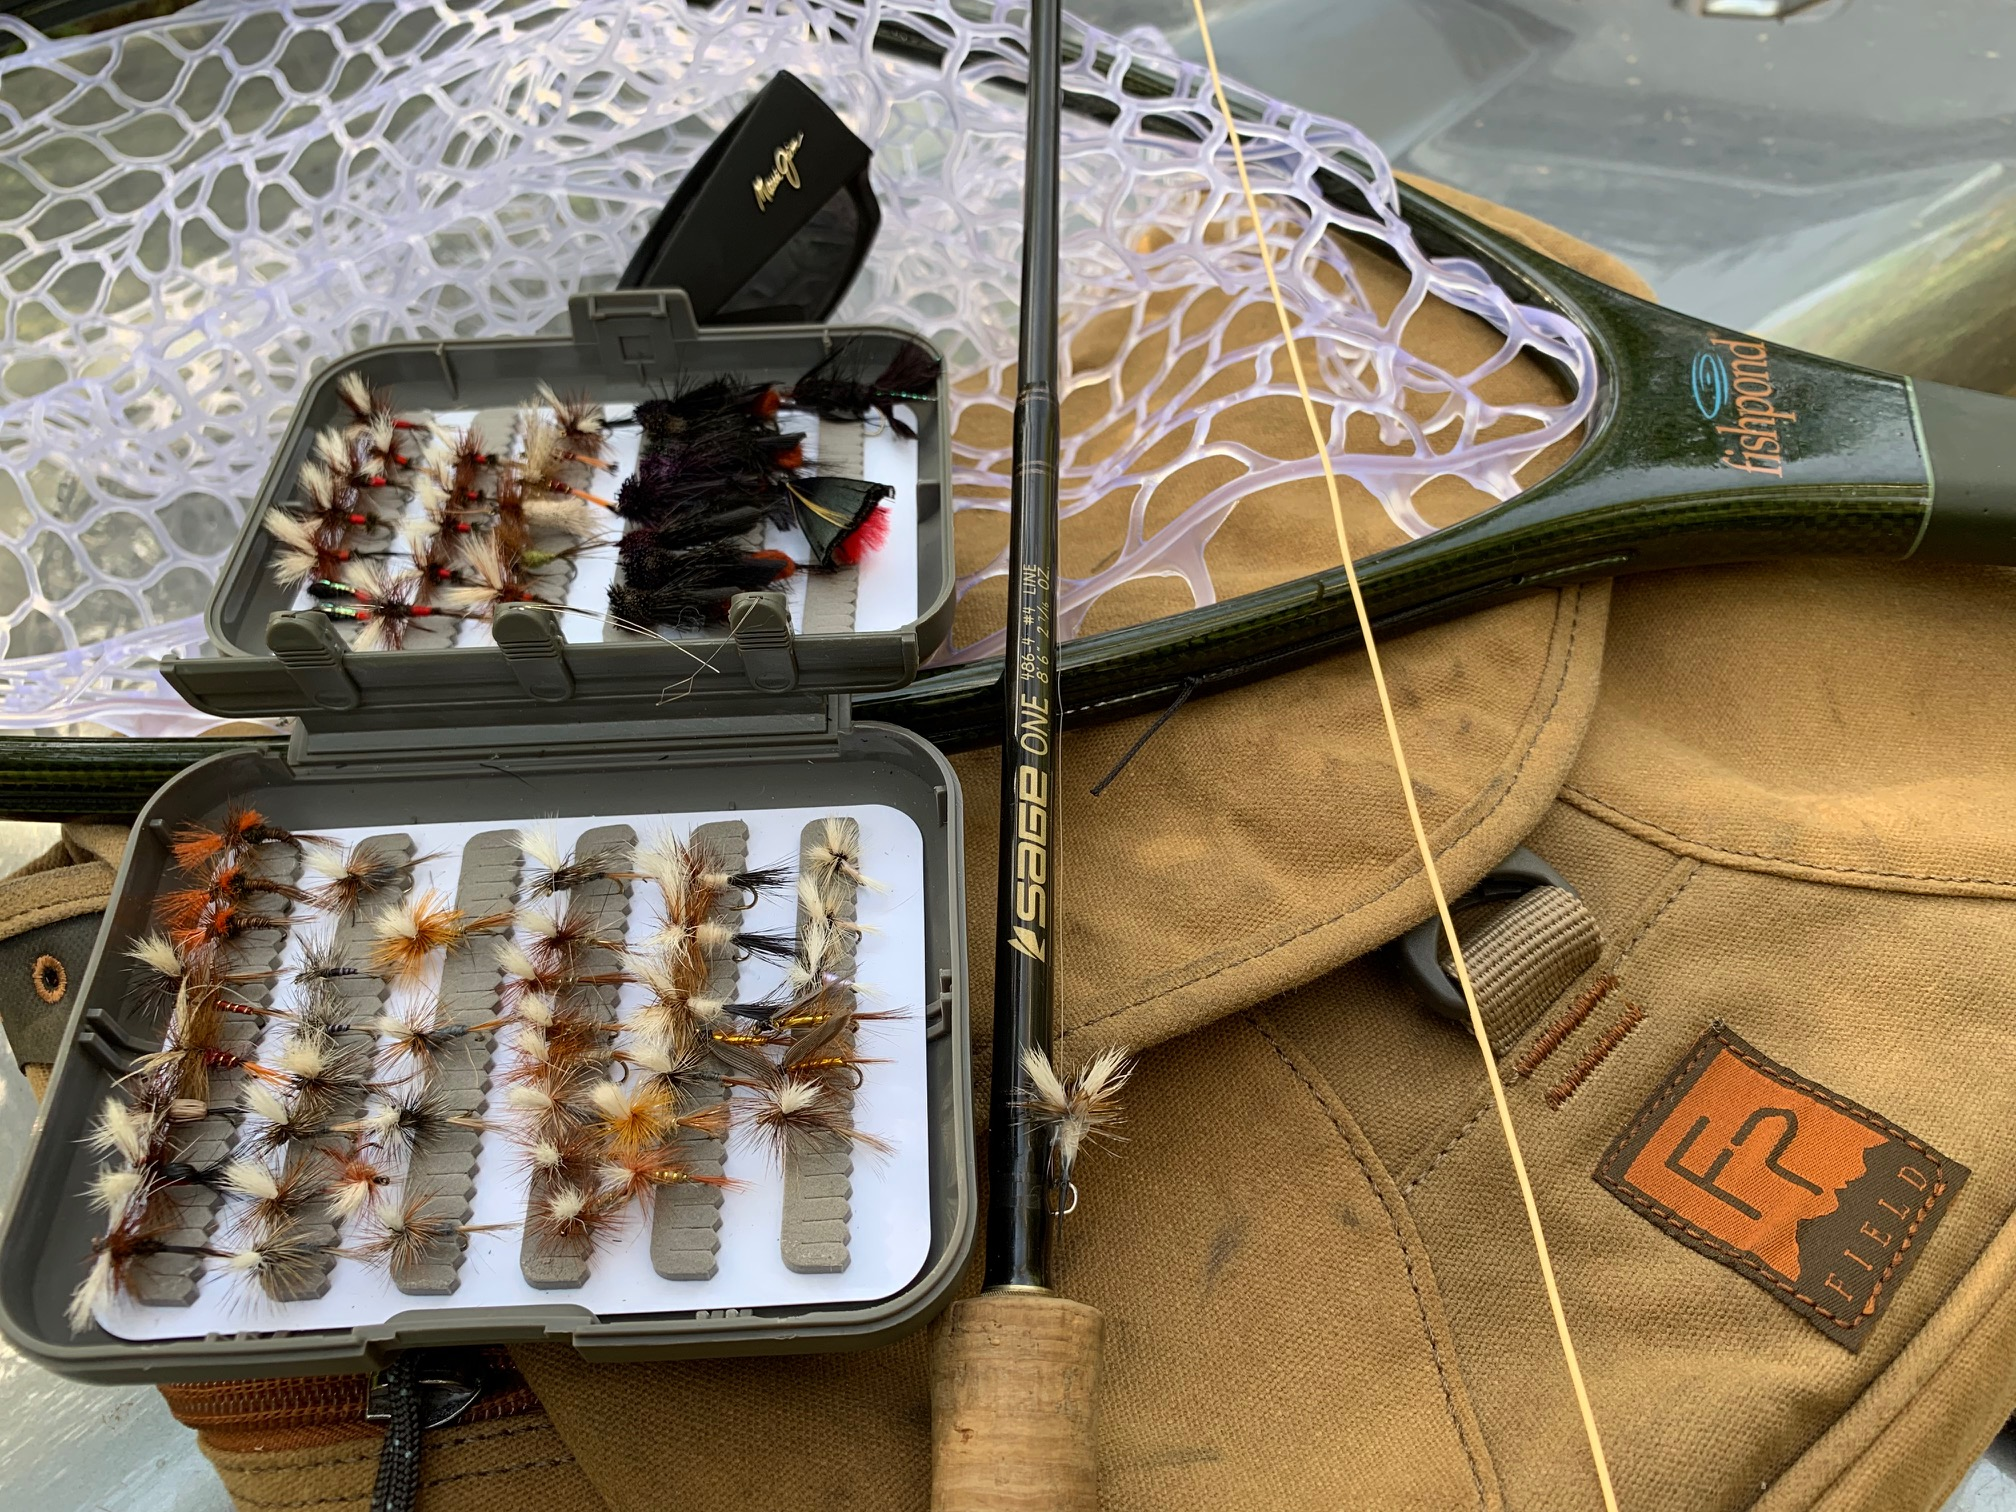 Checking the 'kit' prior to walking down to another of our local wilderness trout streams. The Summertime dry fly fishing is terrific!